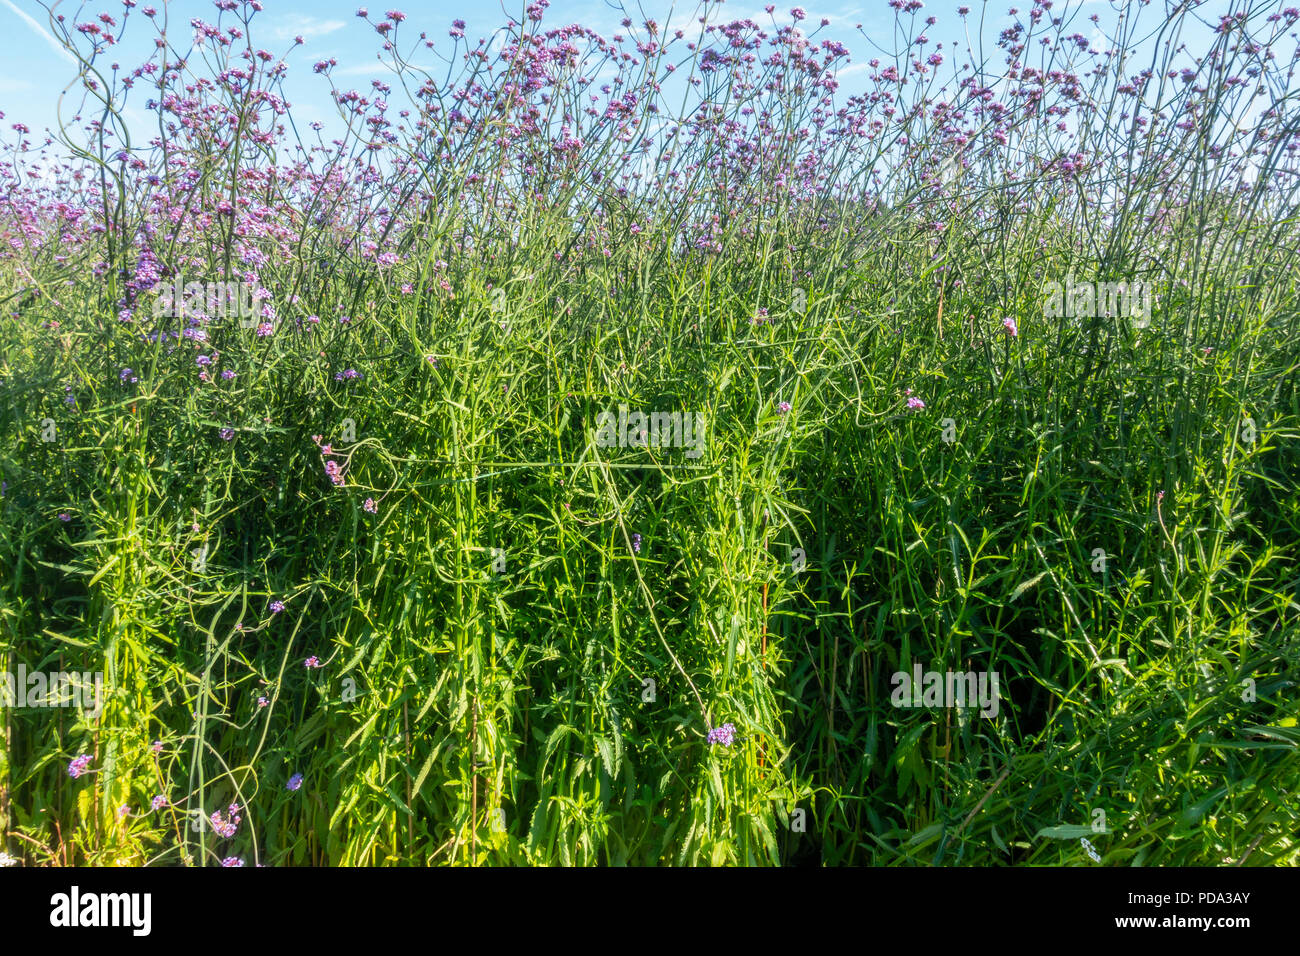 A mass planting of Verbena bonariensis, Argentinian Vervain, a plant originating in South America. - Stock Image